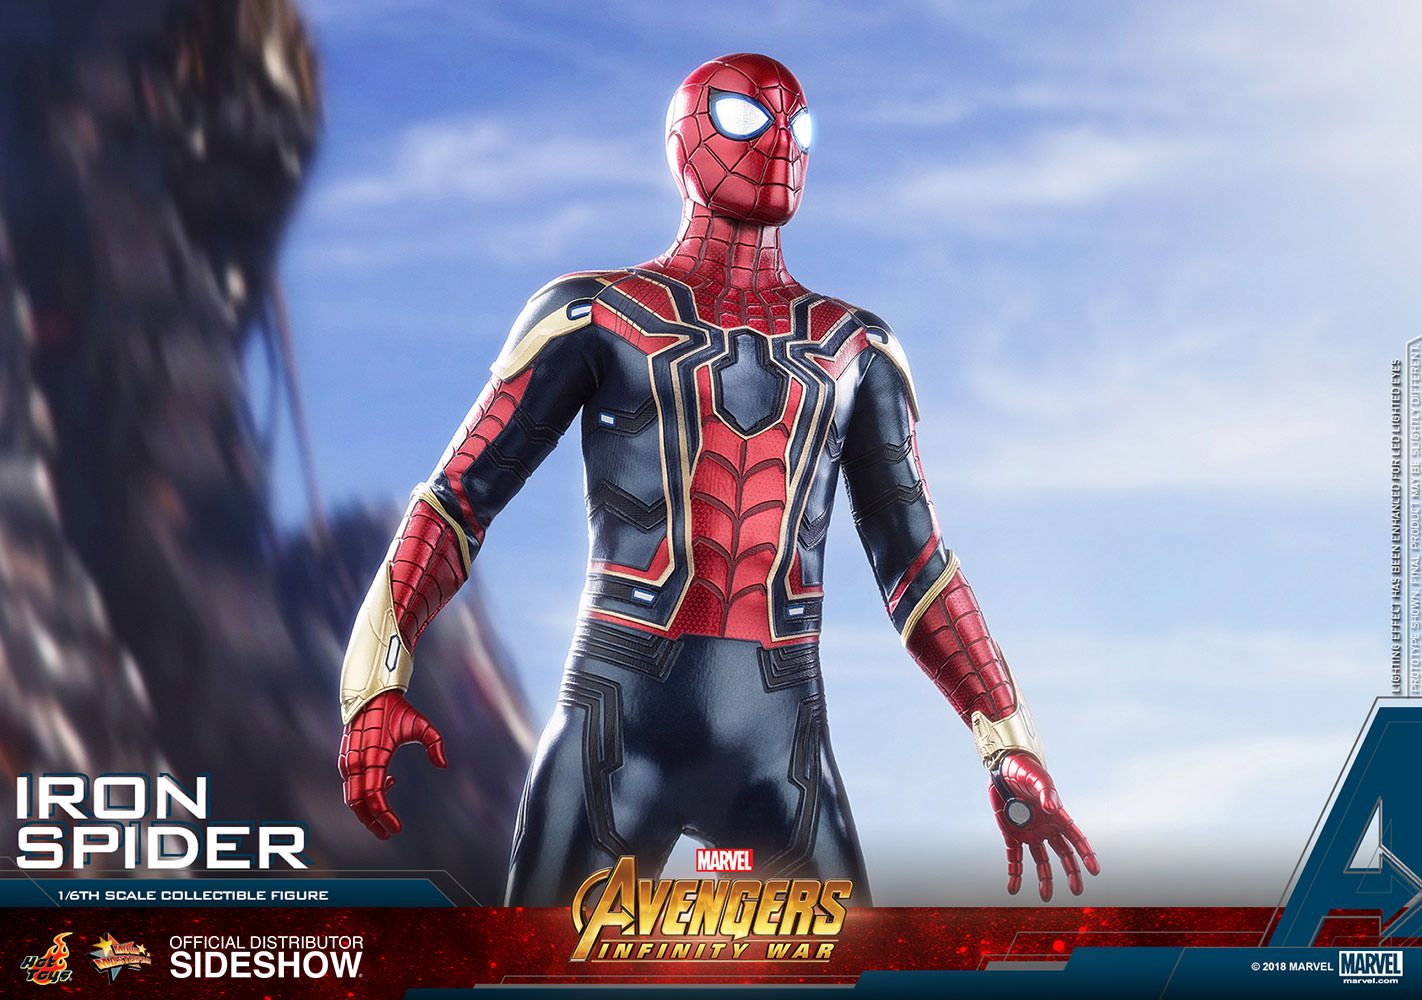 marvel-avengers-infinity-war-iron-spider-sixth-scale-hot-toys-903471-23